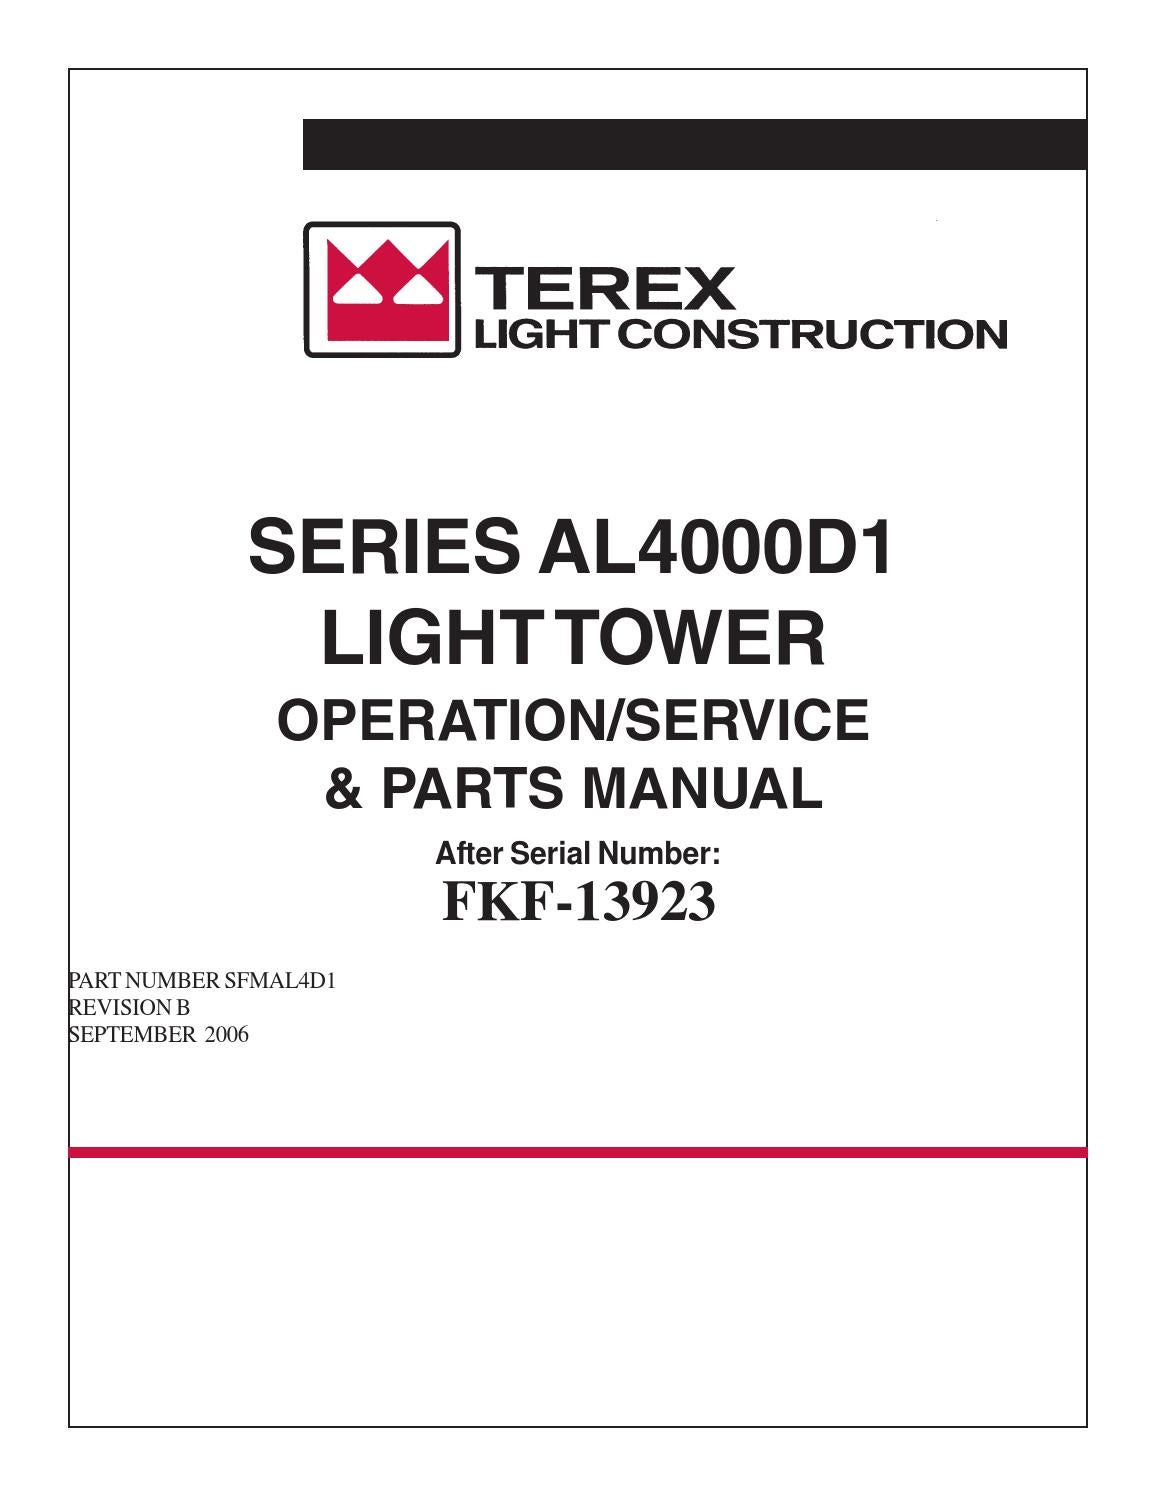 TEREX AMIDA LIGHT TOWER SERIES AL4000D1 by Power